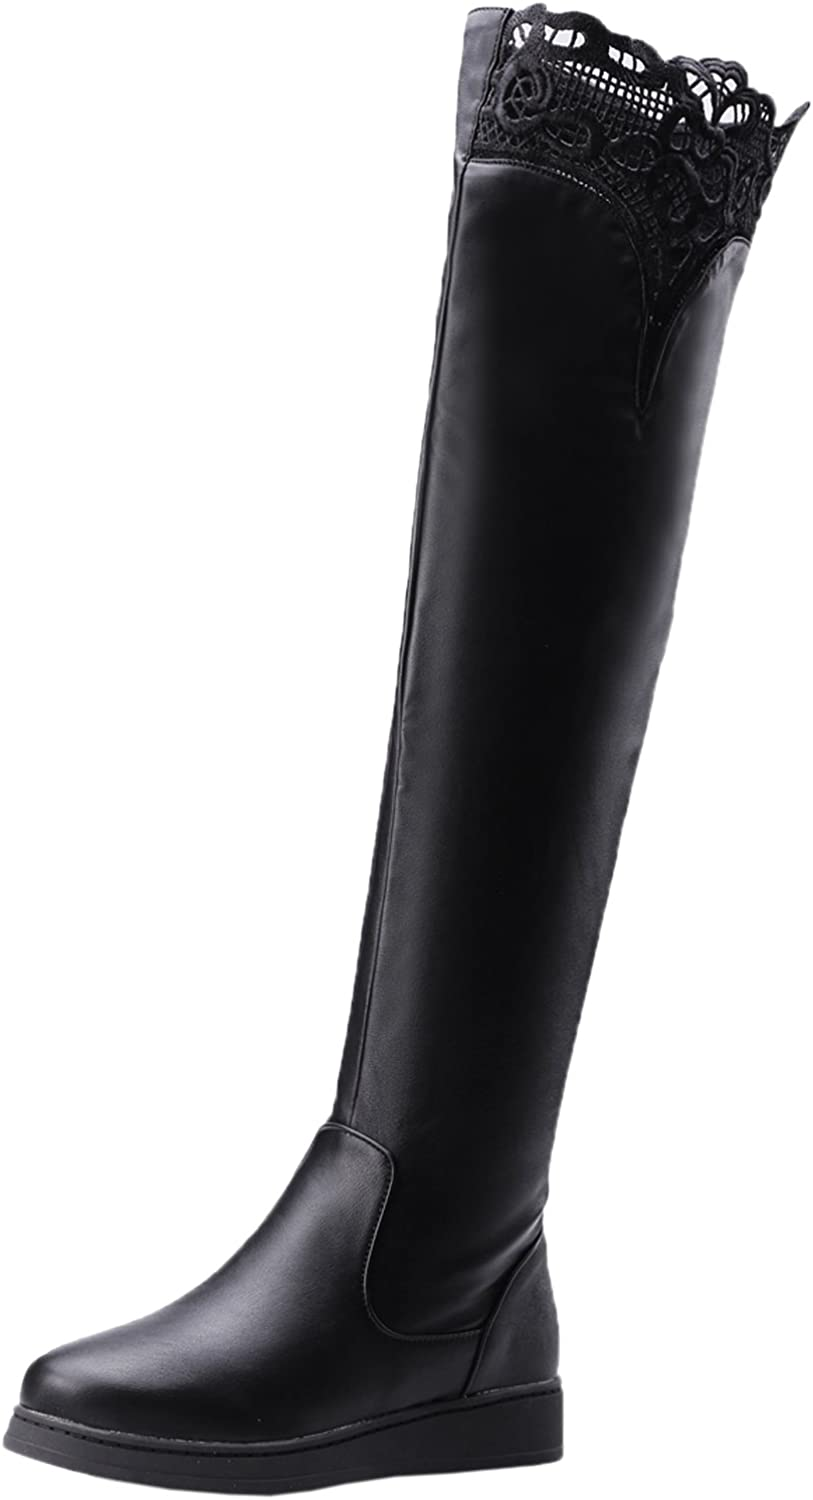 BIGTREE Knee High Boots Women Fall Winter Flat Black Embroidered Lace Warm Over The Knee Boots